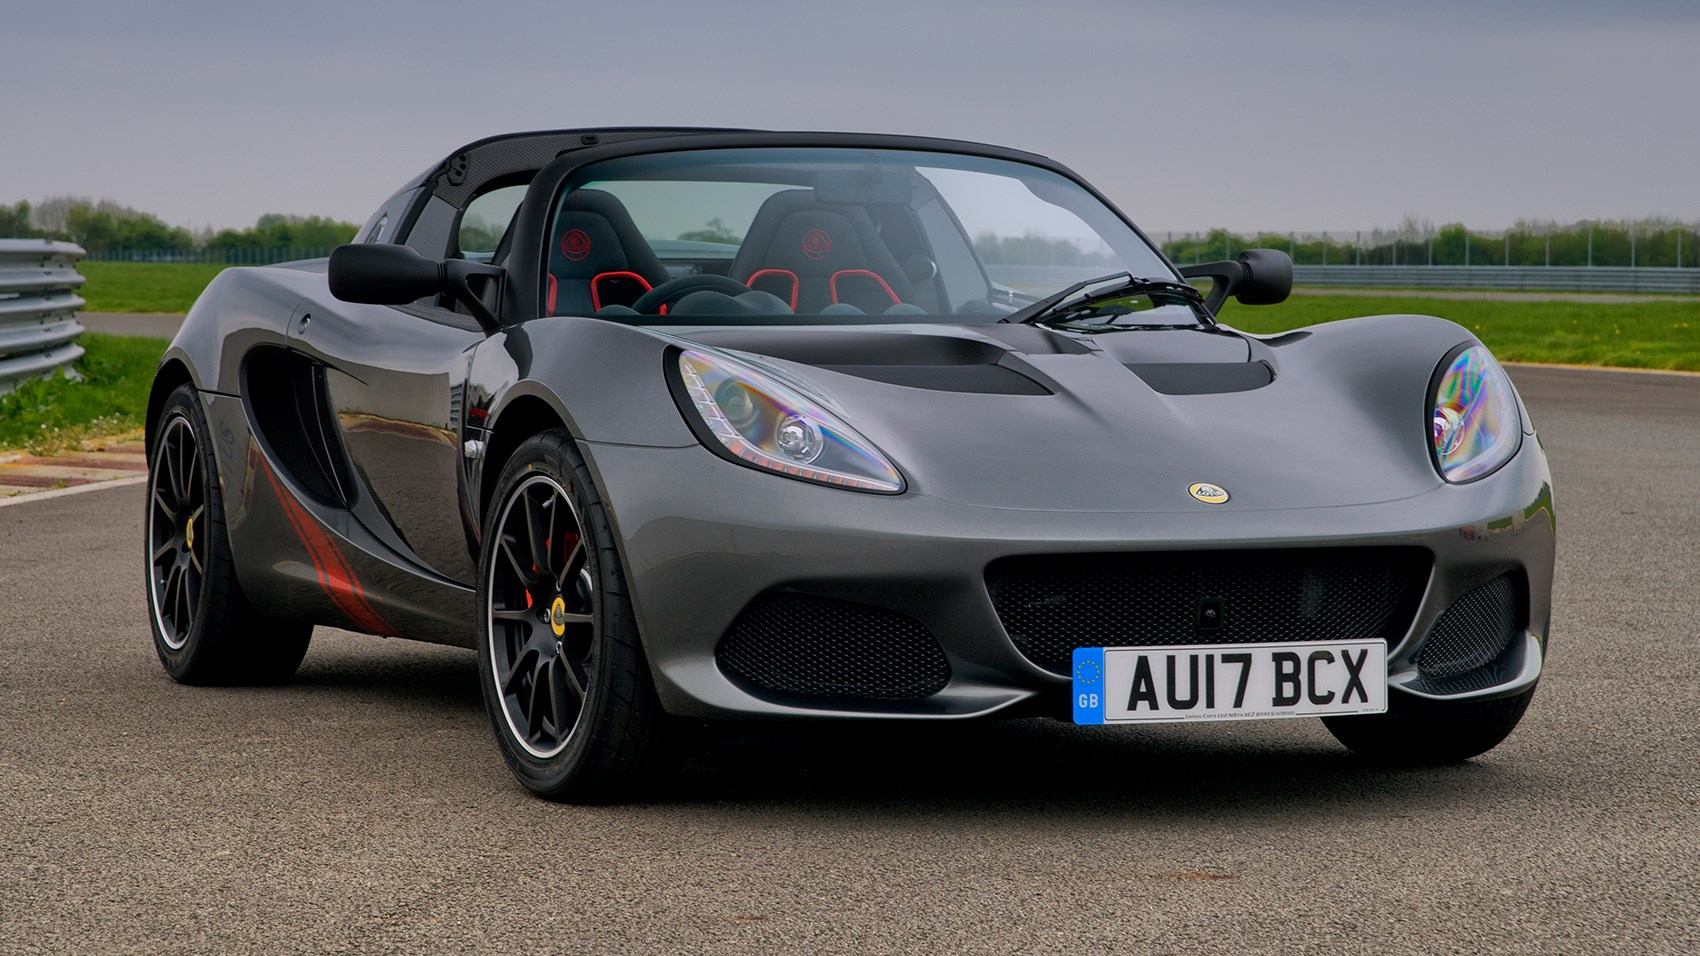 https://www.carmagazine.co.uk/Images/PageFiles/72398/Lotus-Elise-Sprint-05.jpg